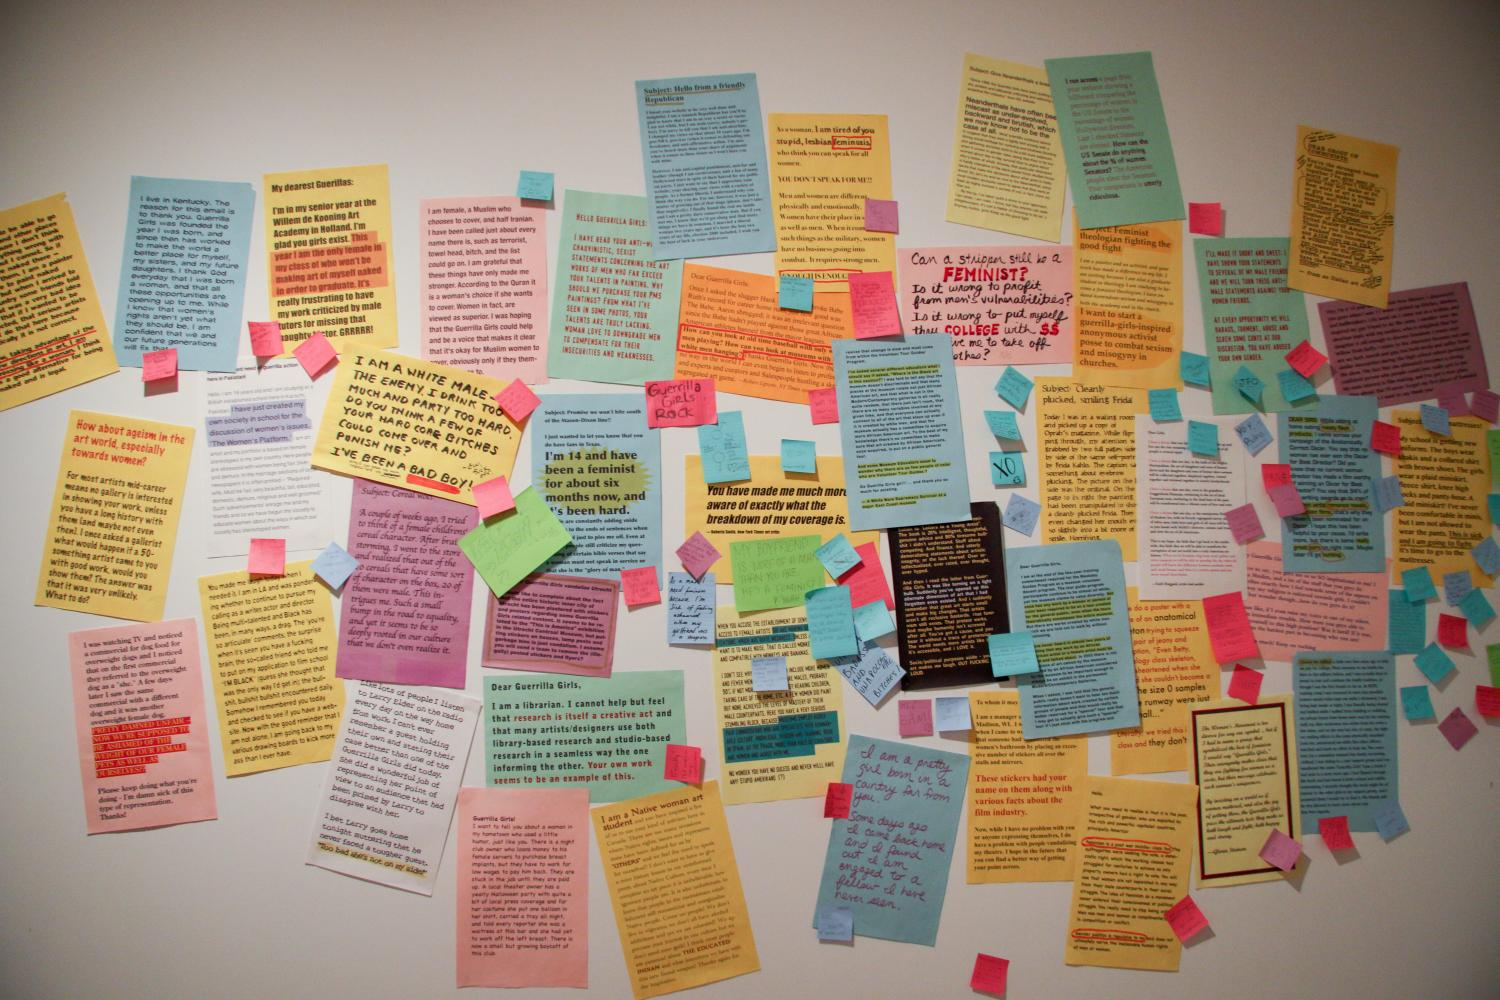 Not Ready to Make Nice: Guerrilla Girls in the Artworld and Beyond, installation at Krannert Art Museum, 2014.